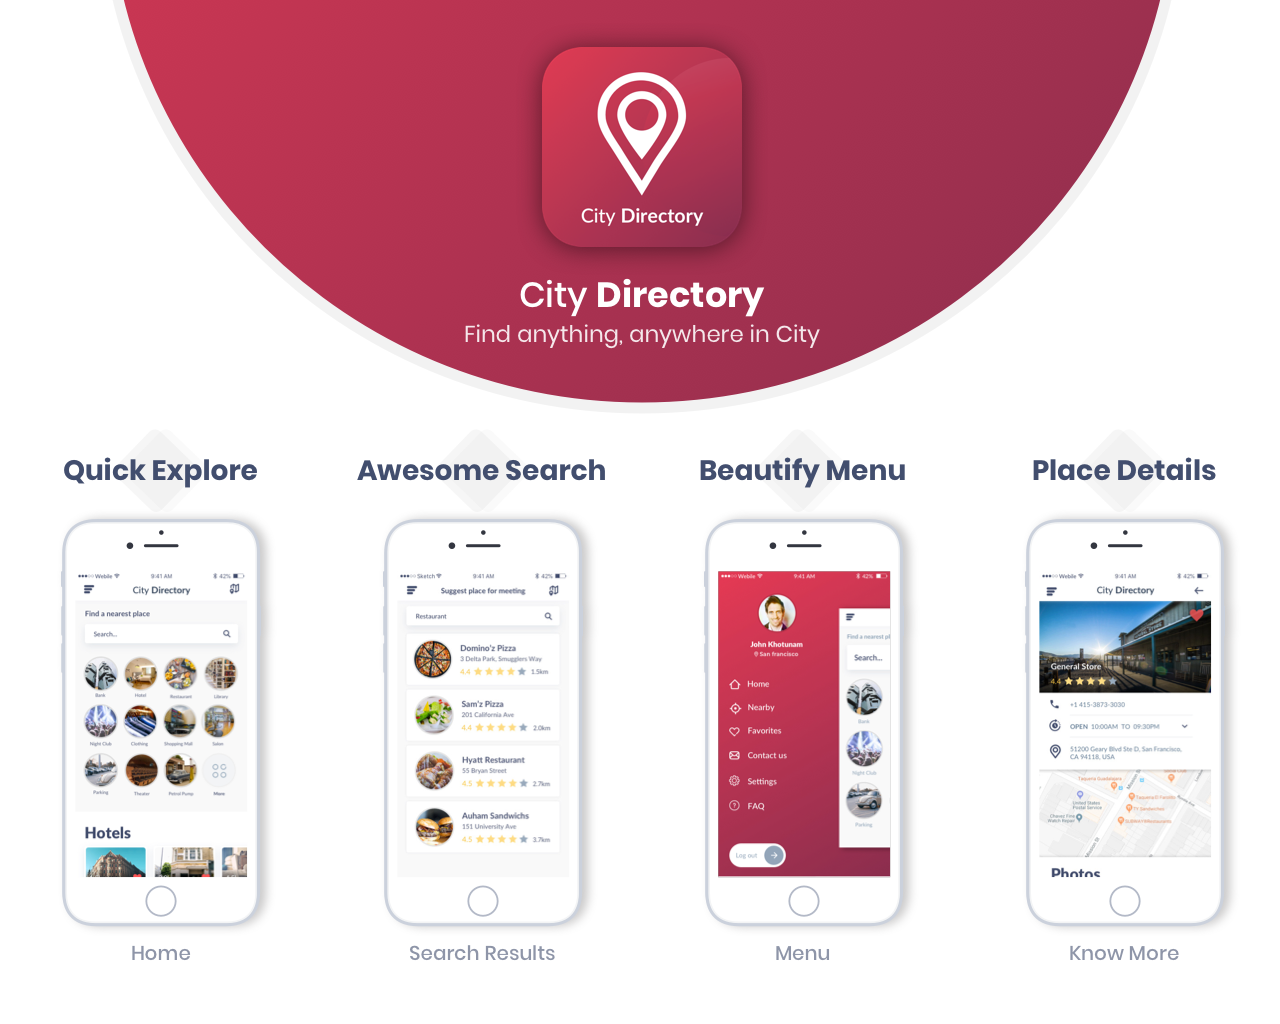 City Directory Android Native App Source Code Free 2018